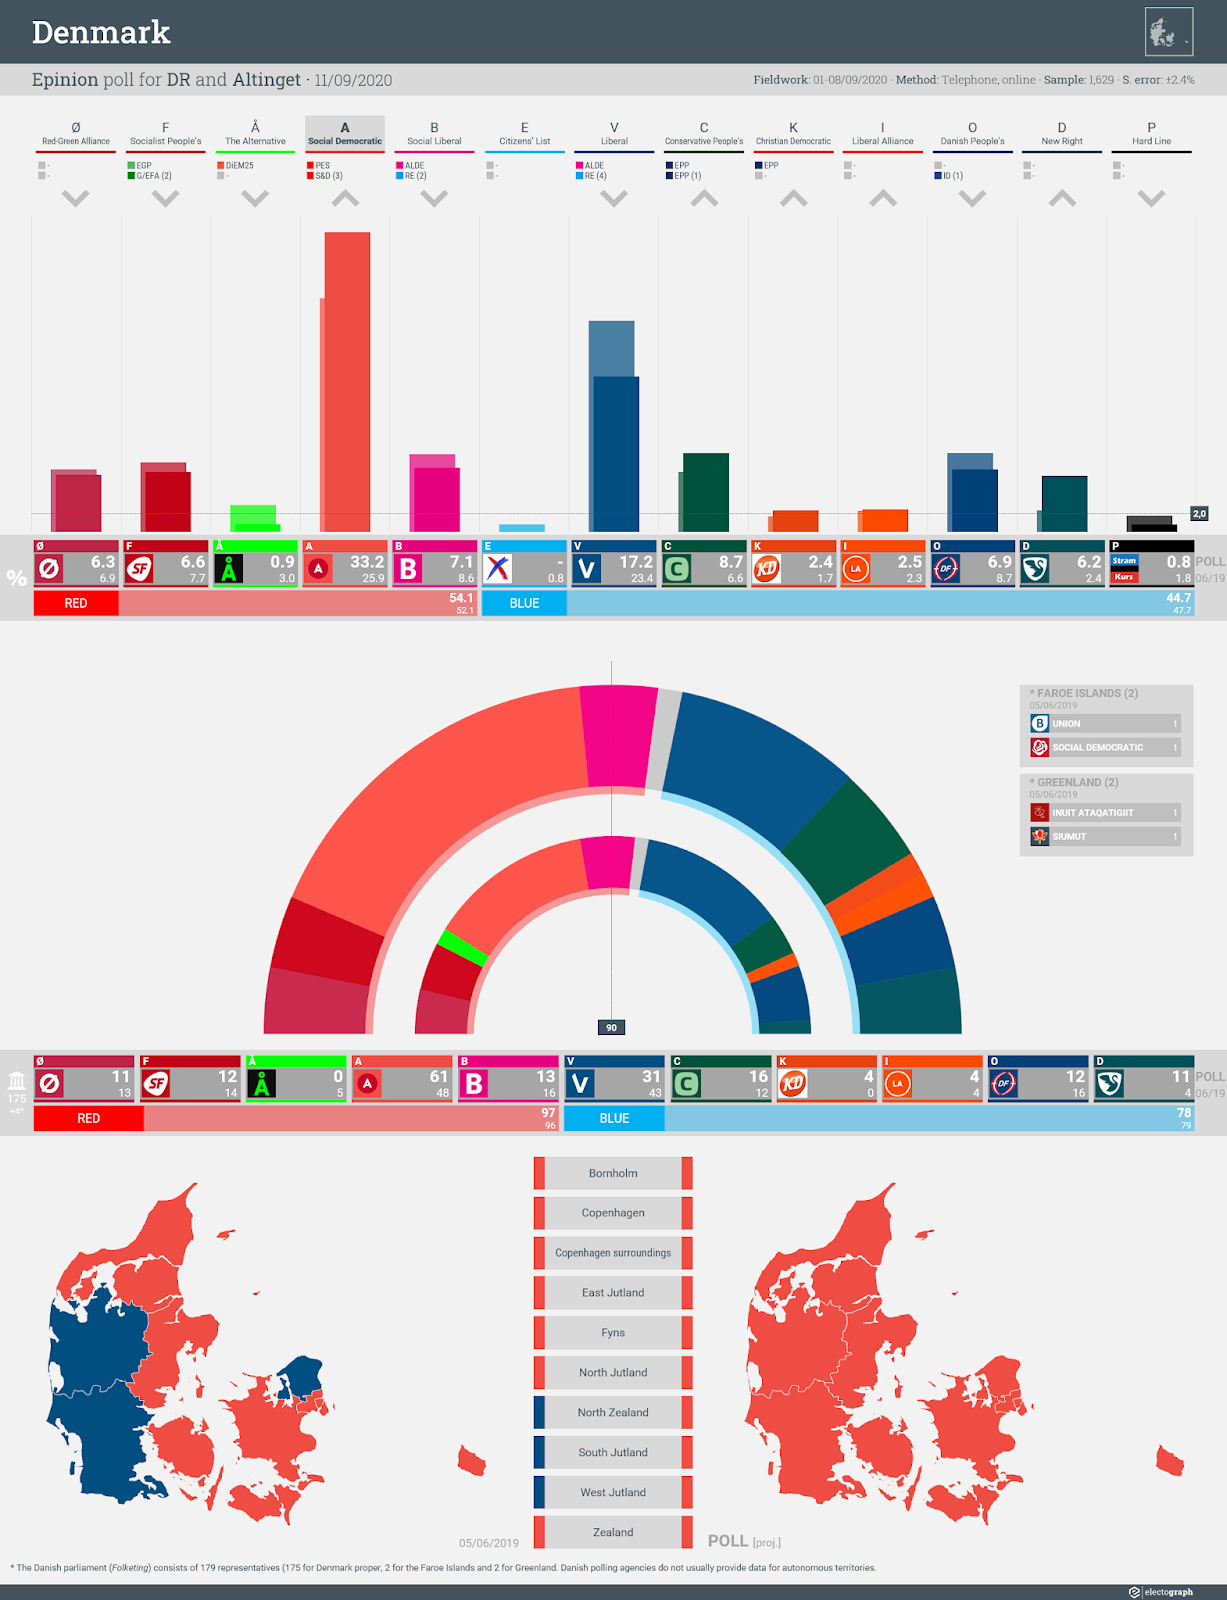 DENMARK: Epinion poll chart for DR and Altinget, 11 September 2020